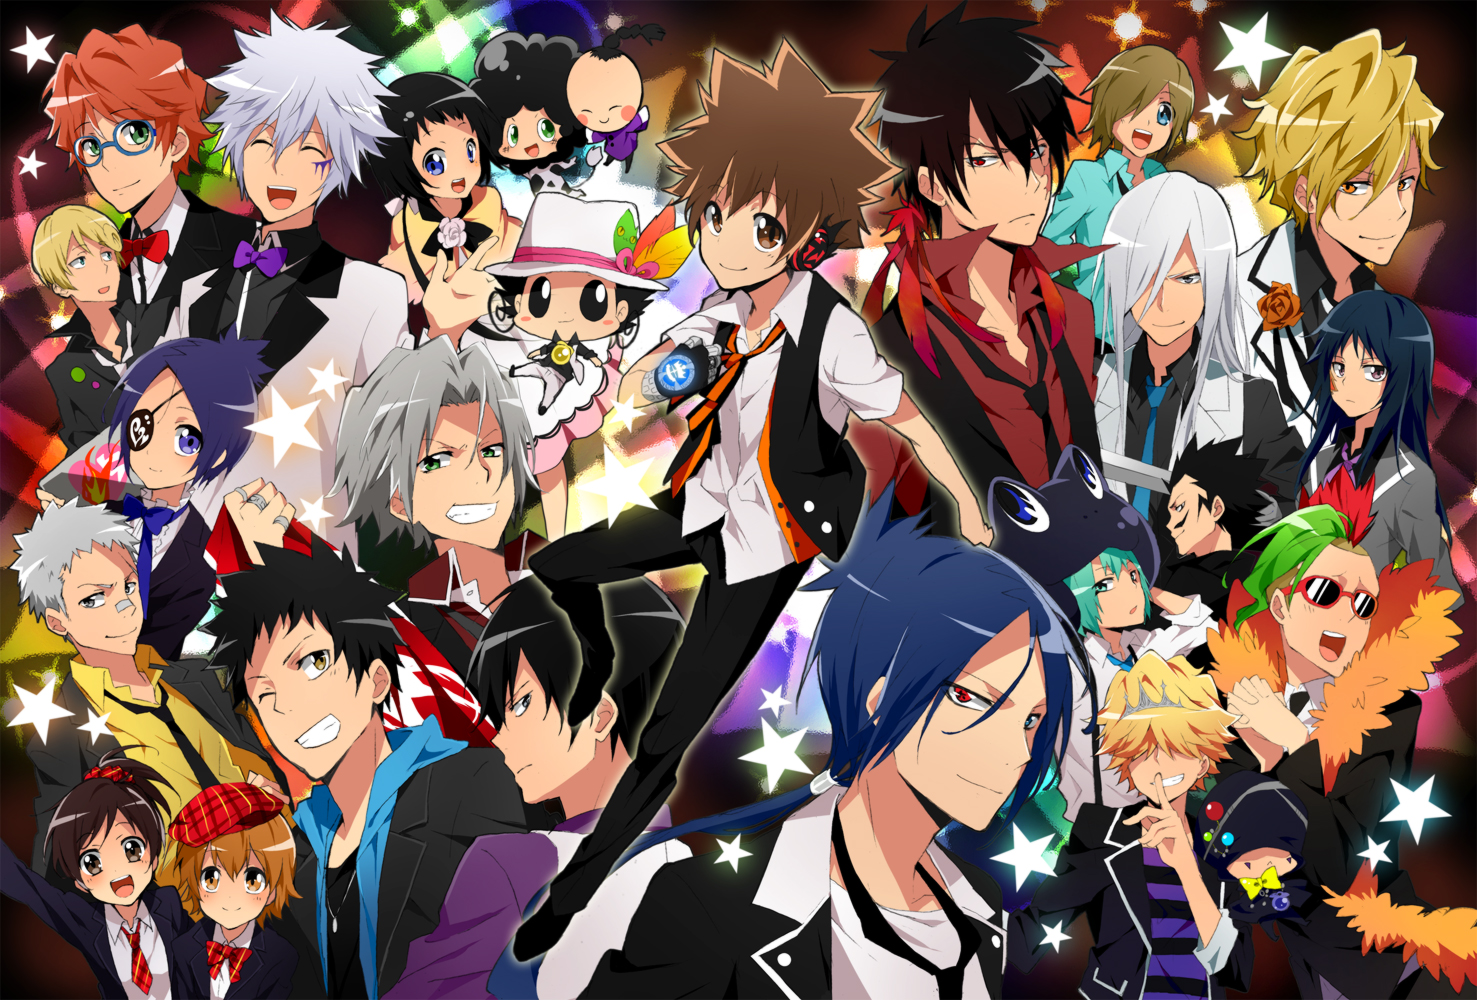 Anime all together khr